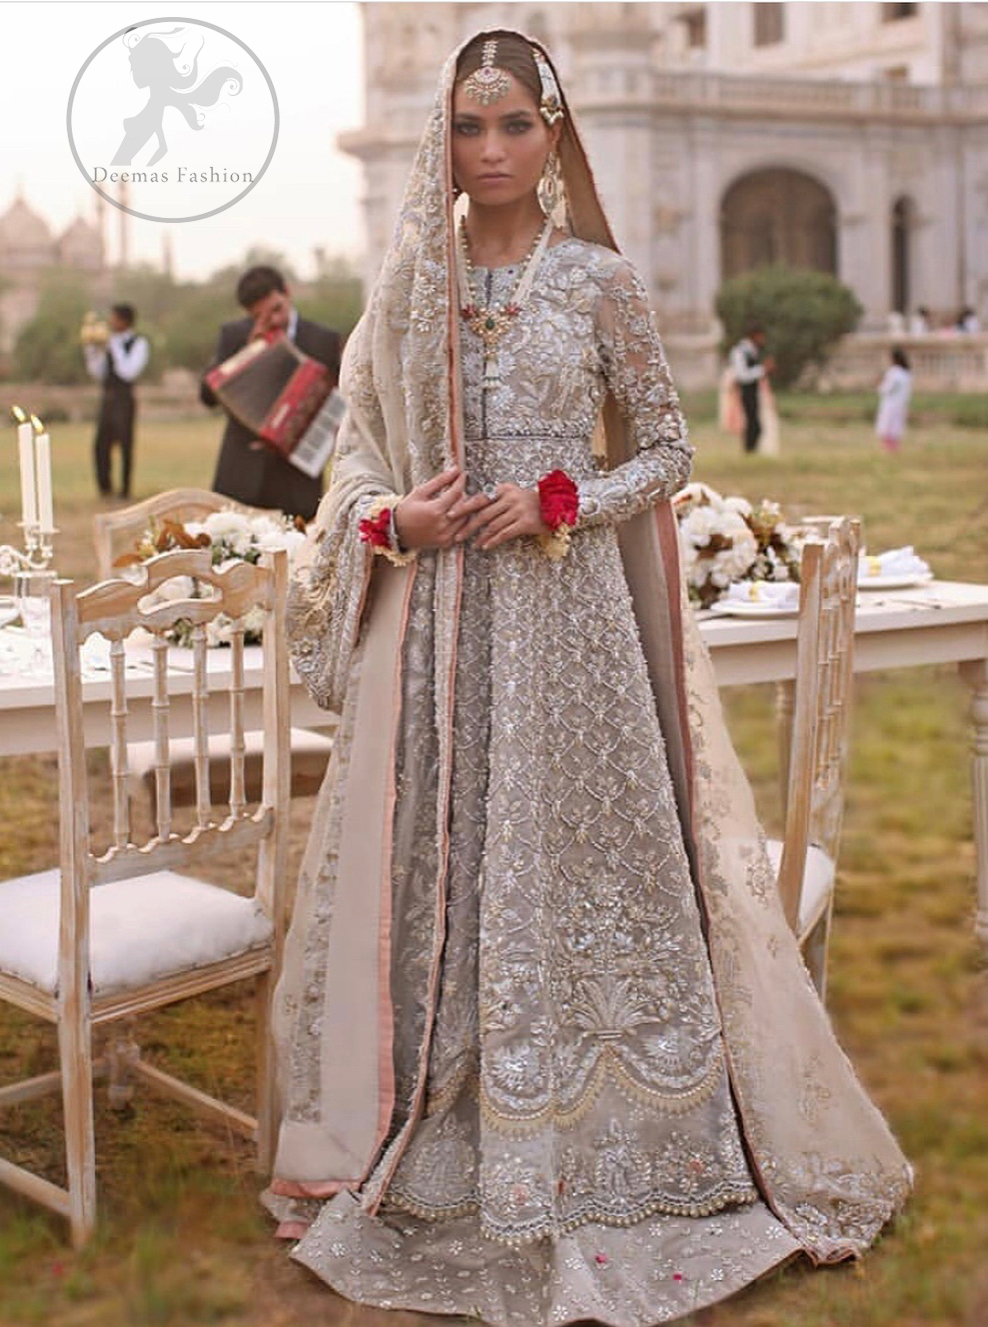 This outfit is a timeless beauty.It is heavily embellished with silver gold kora dabka, Sequins and swaronski crystals.This exquisite Pishwas is fully decorated with floral motifs patterns all over it.It is further enhanced with Foral thread embroidery.The trimming border of pishwas is ornamented with small golden pearls. It comes with embellished lehengha which has small sized sprinkled floral motifs all over.This Outfit is beautifully coordinated with matching Dupatta with heavy embroidered borders.